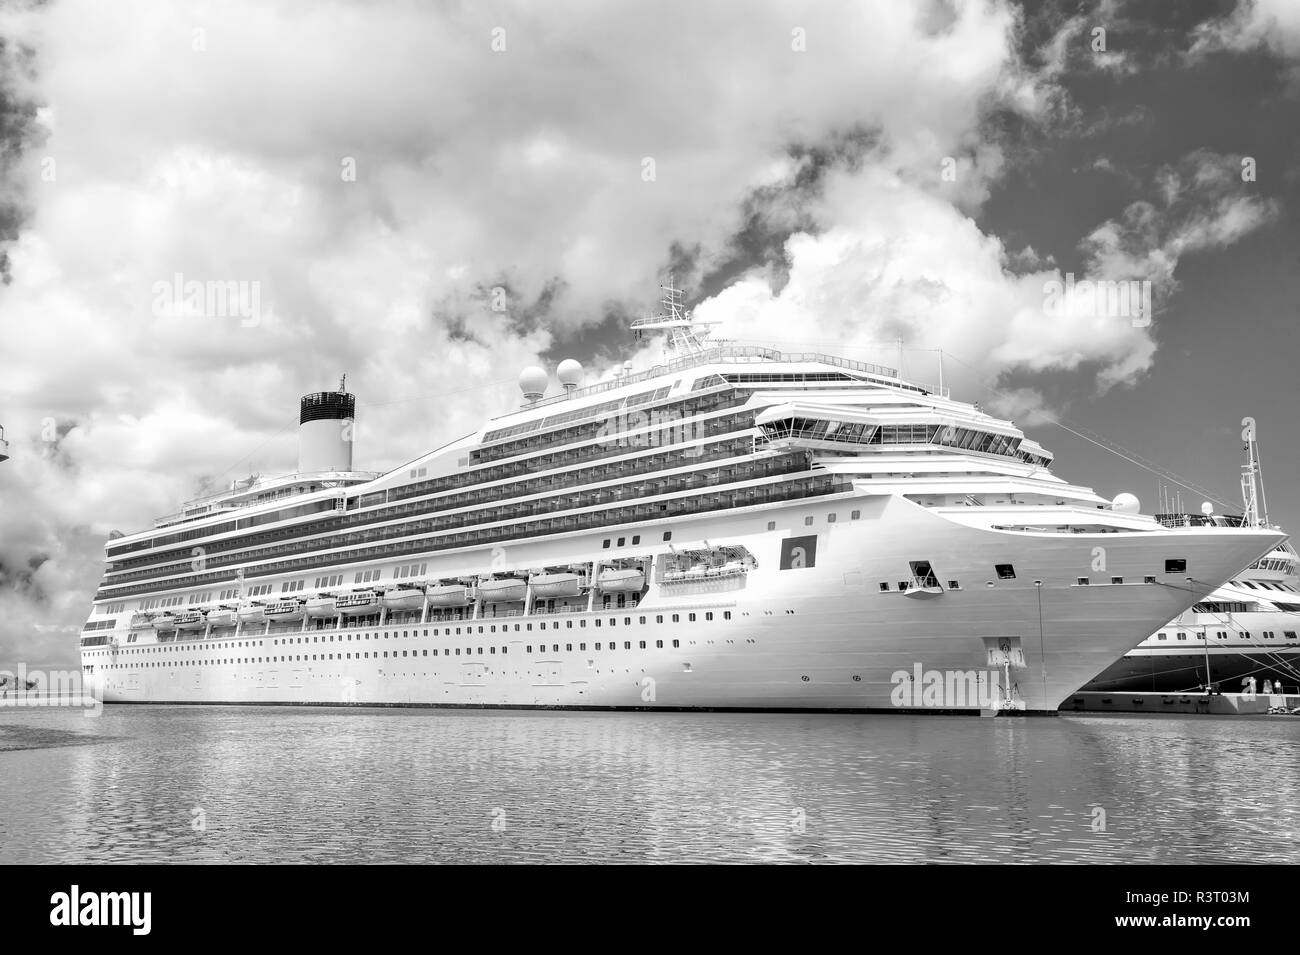 Large luxury cruise ship or liner on sea water and cloudy sky background docked at port of st.Johns, Antigua Stock Photo